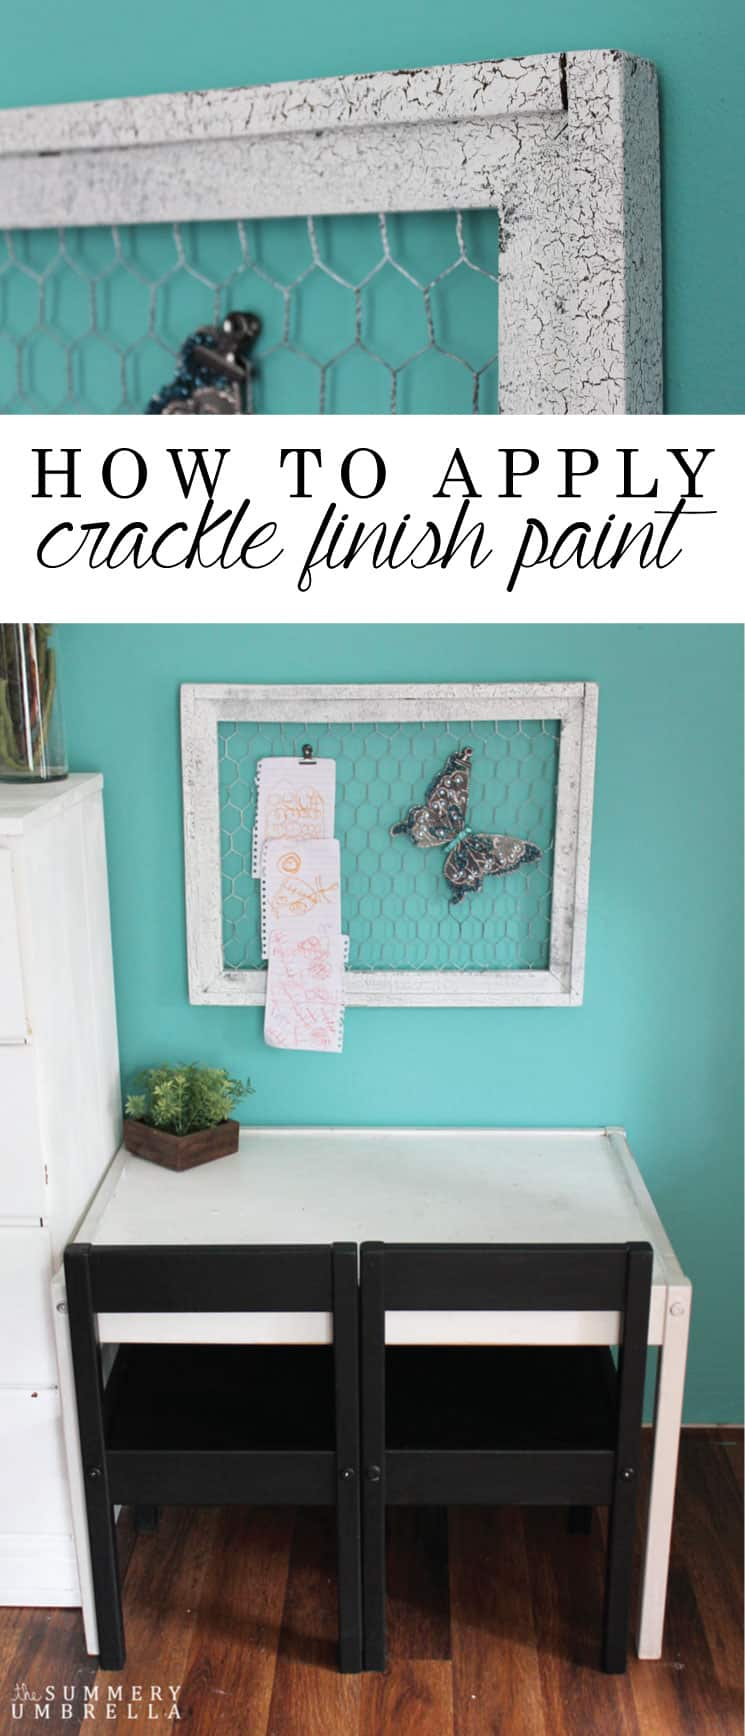 Do you love that chippy paint look? I'm truly amazed with my DIY results, and want to show you how to apply crackle finish paint on the blog today!